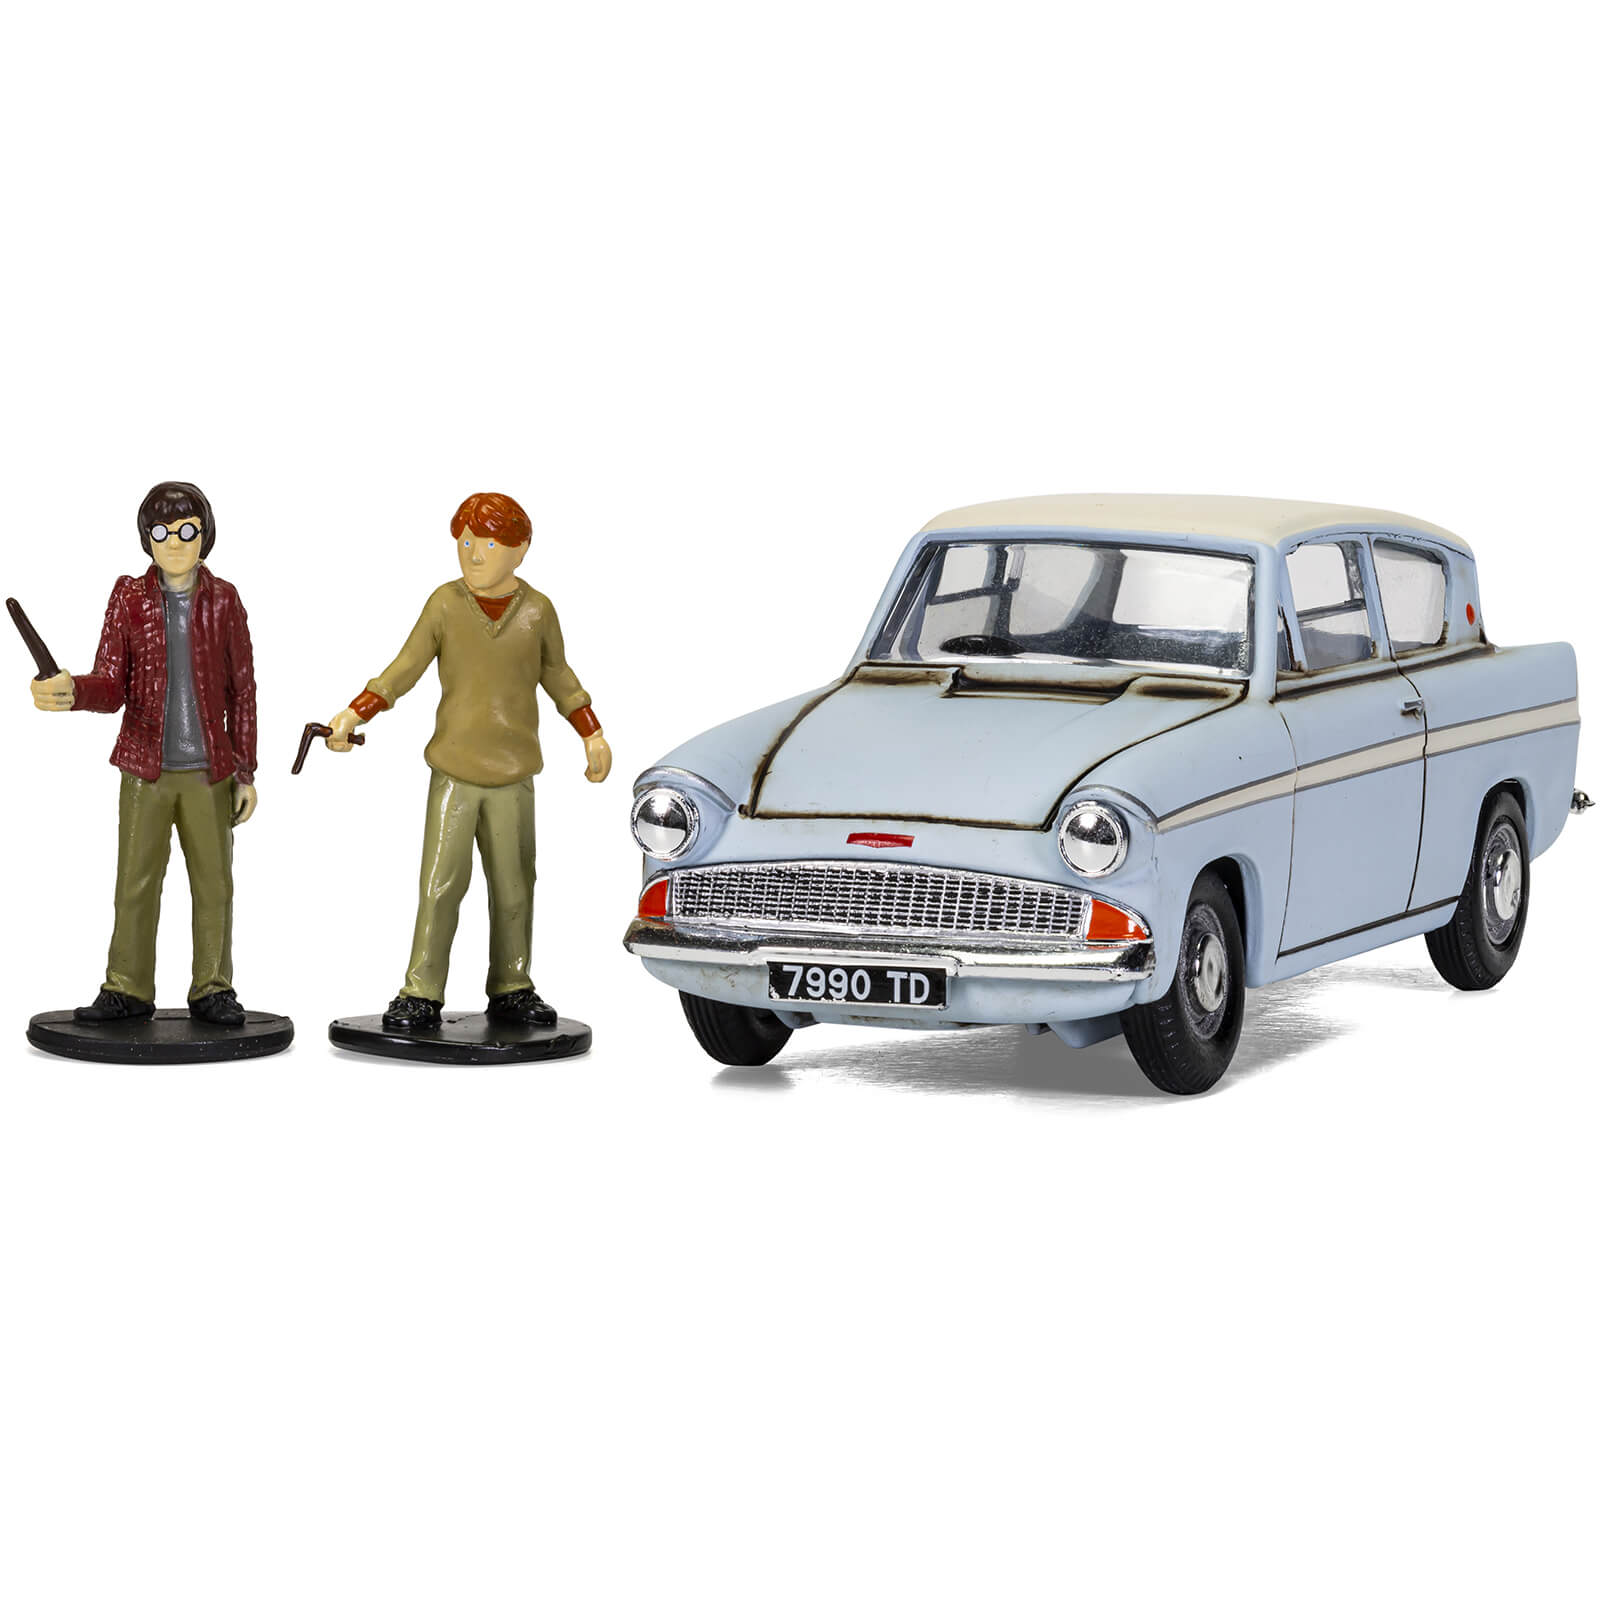 Image of Harry Potter Enchanted Ford Anglia w/Harry and Ron figures Model Set - Scale 1:43